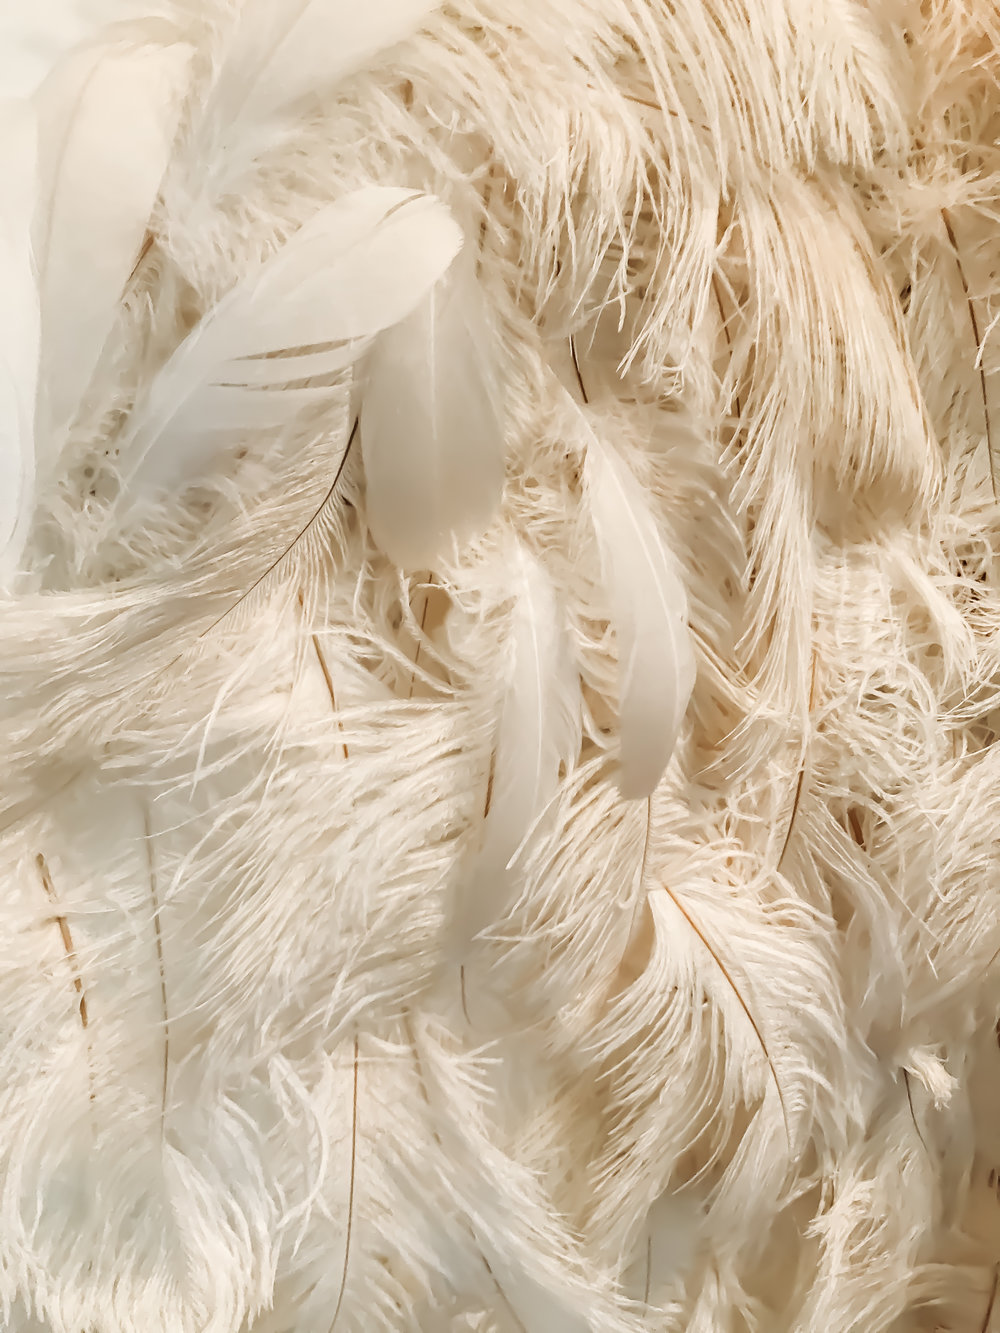 Up close of ostrich feathers - bones showing